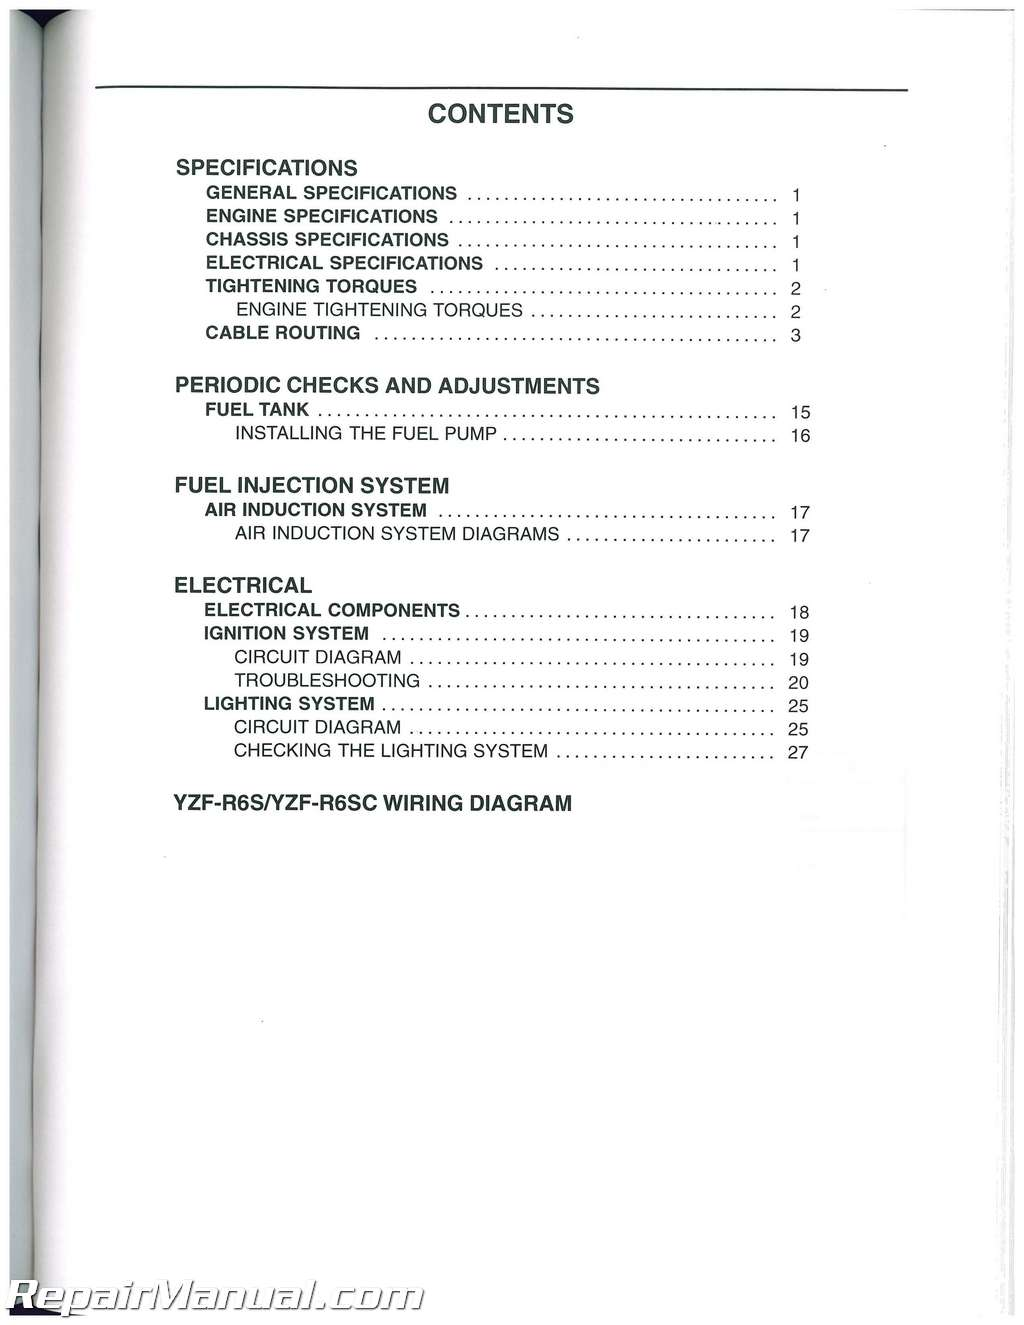 Yamaha Yzf R6 2006 Service Manual 06 Engine Diagram 2003 Displanet Net